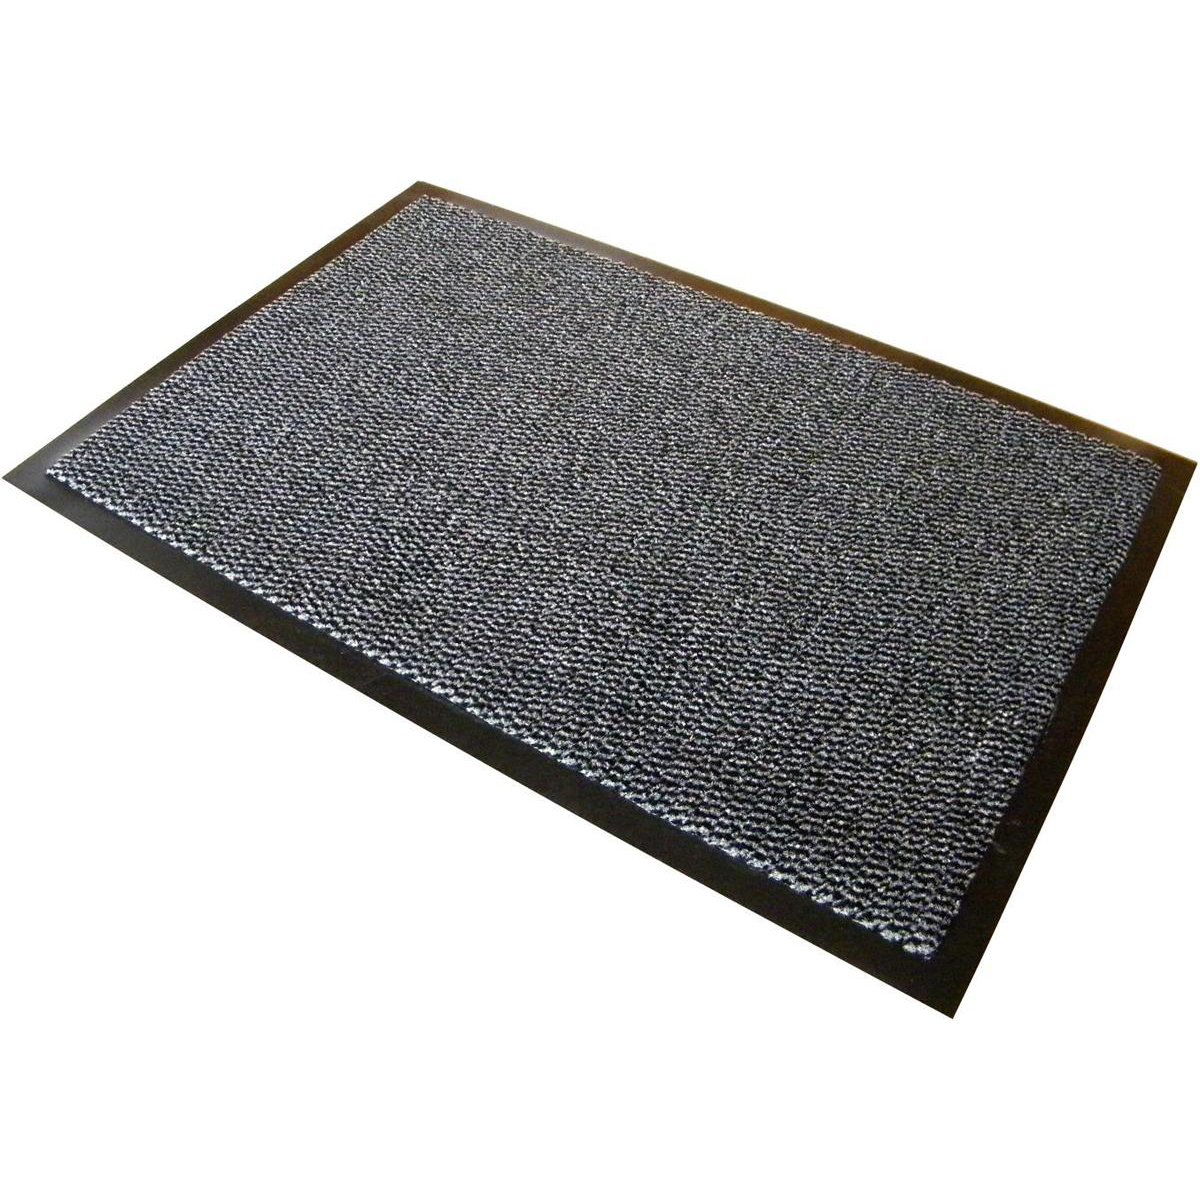 Doortex Advantagemat Mat on Roll Anti-slip Polypropylene 900x3000mm Anthracite Ref FC490300PPMR